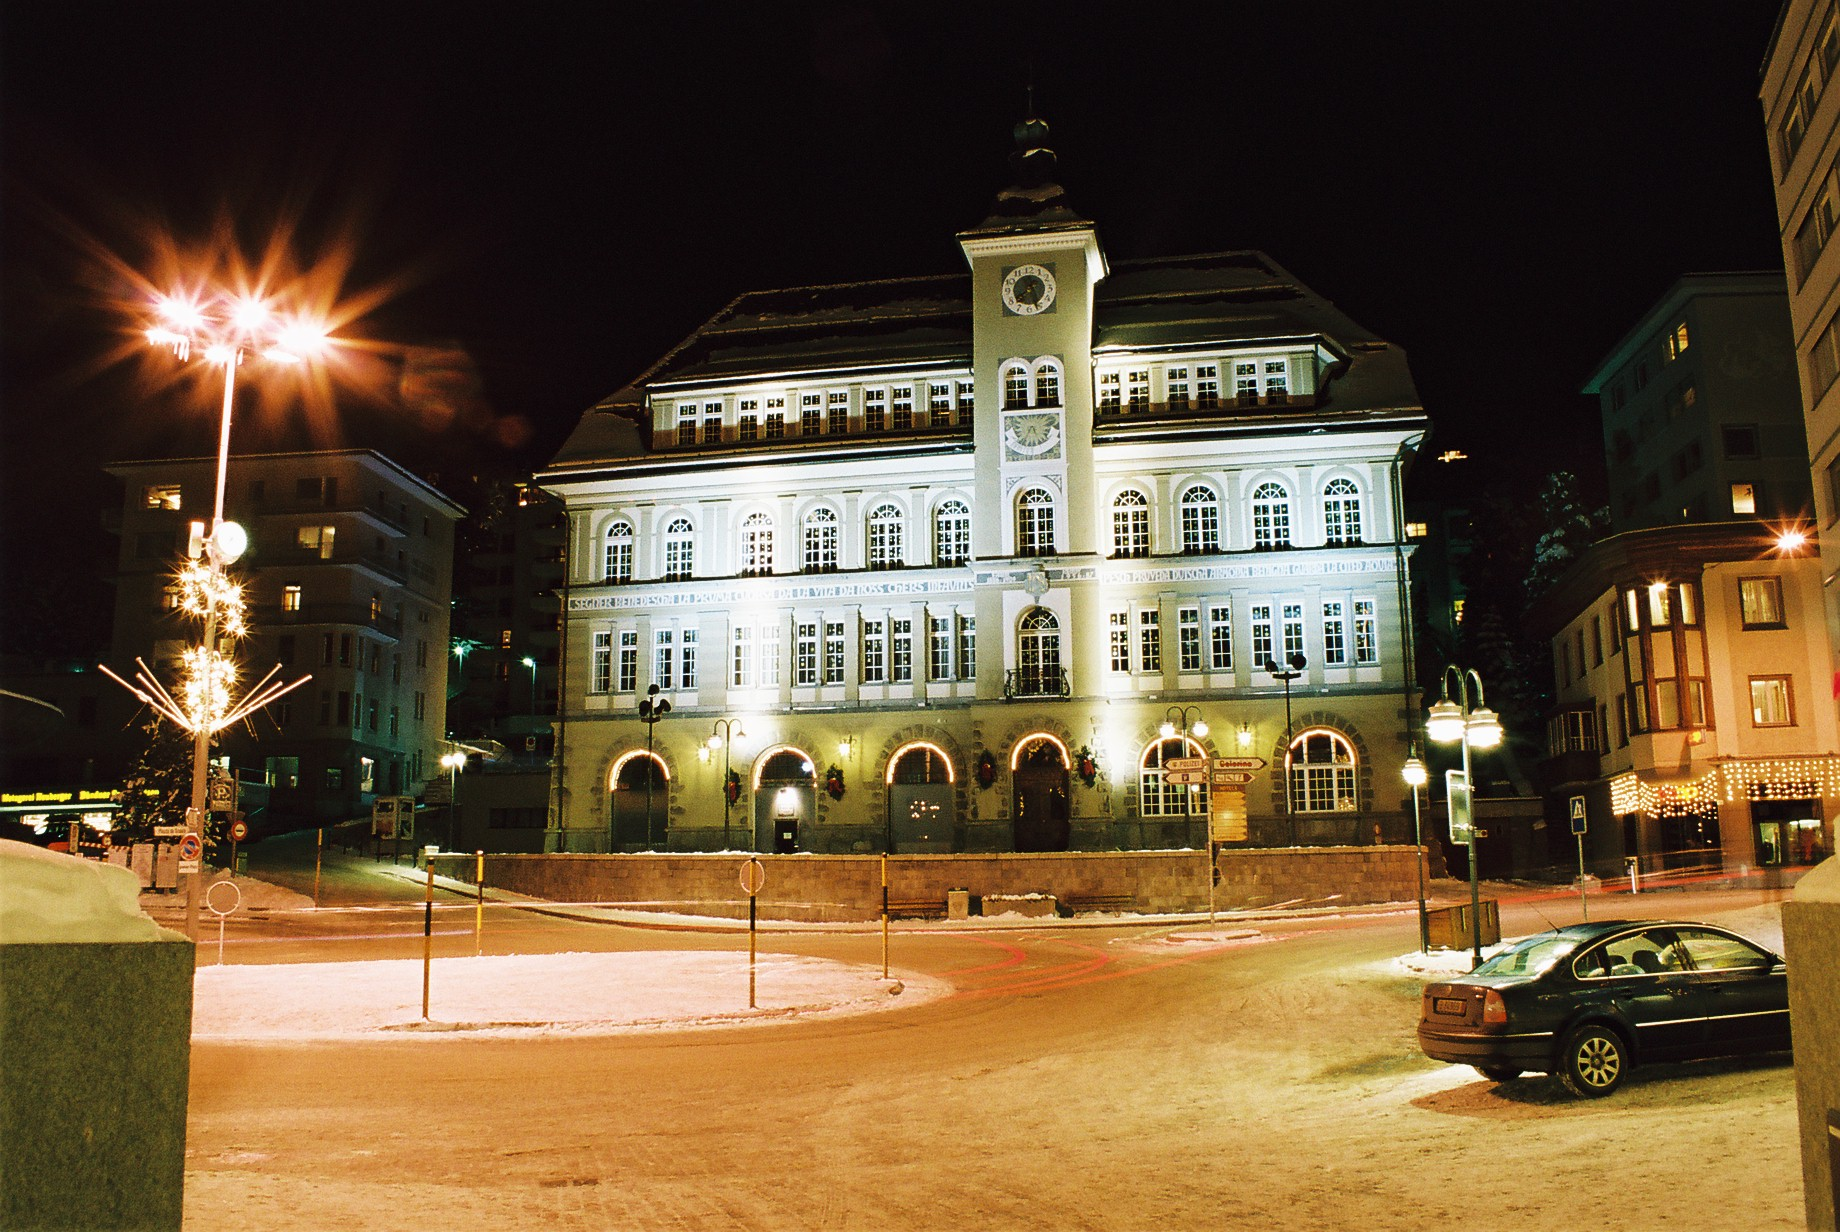 Schoolhouse in St. Moritz by pdentsch